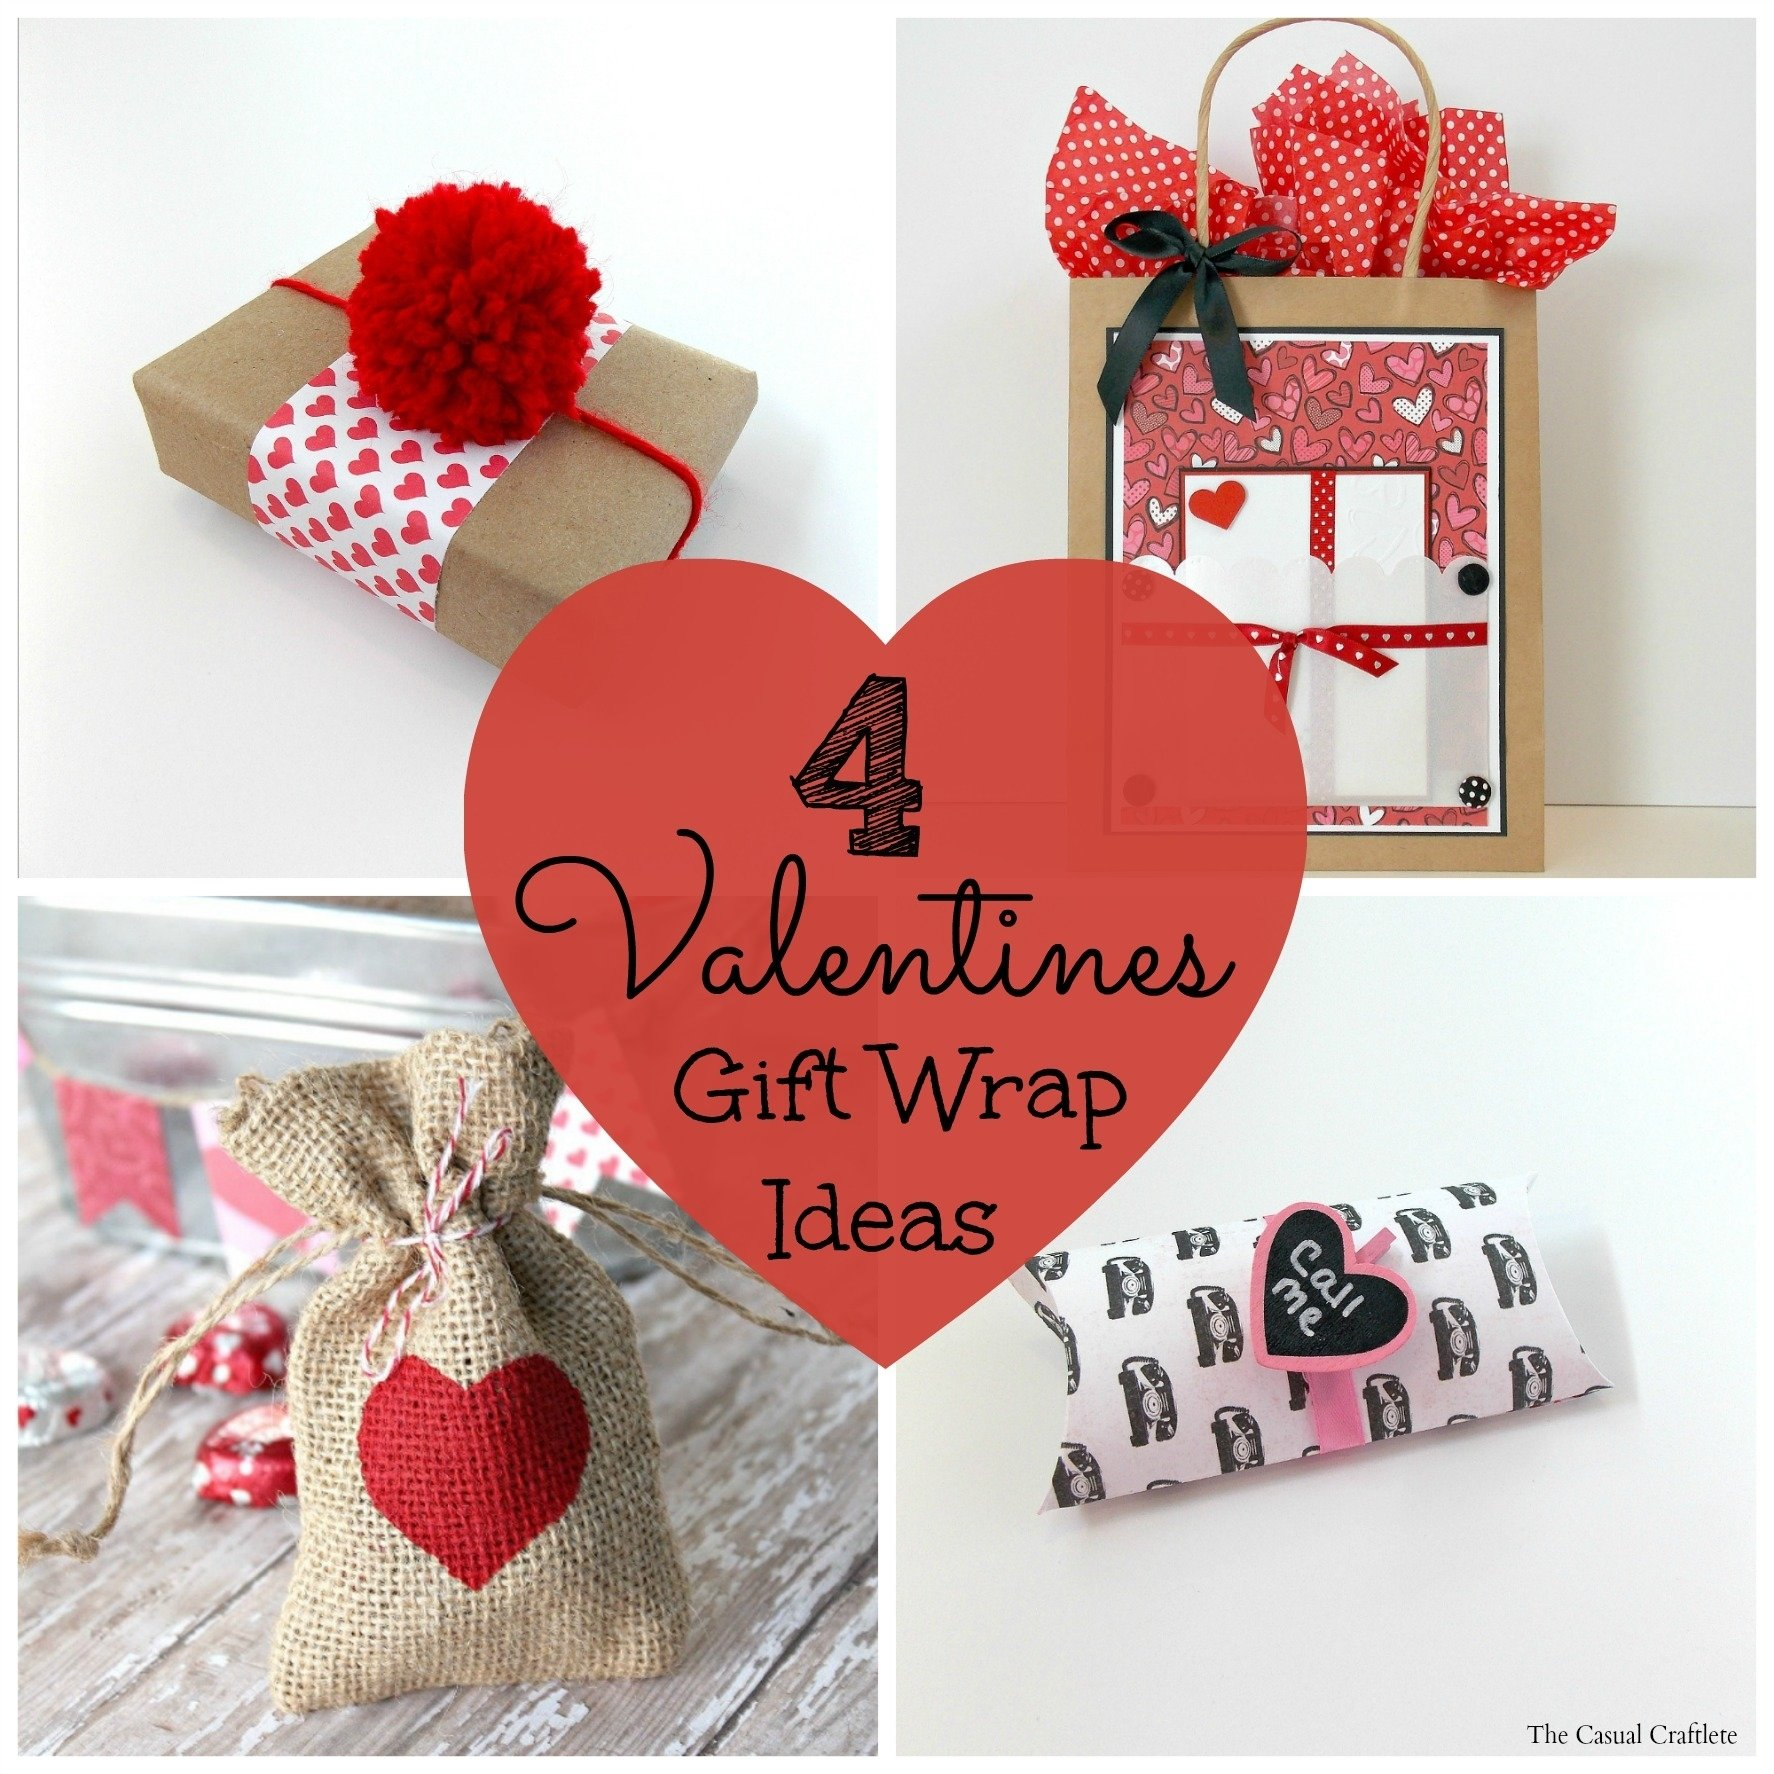 10 Awesome Cute Valentines Day Ideas For Girlfriend valentines day gift ideas for girlfriend 2018 new ideas 2 2020